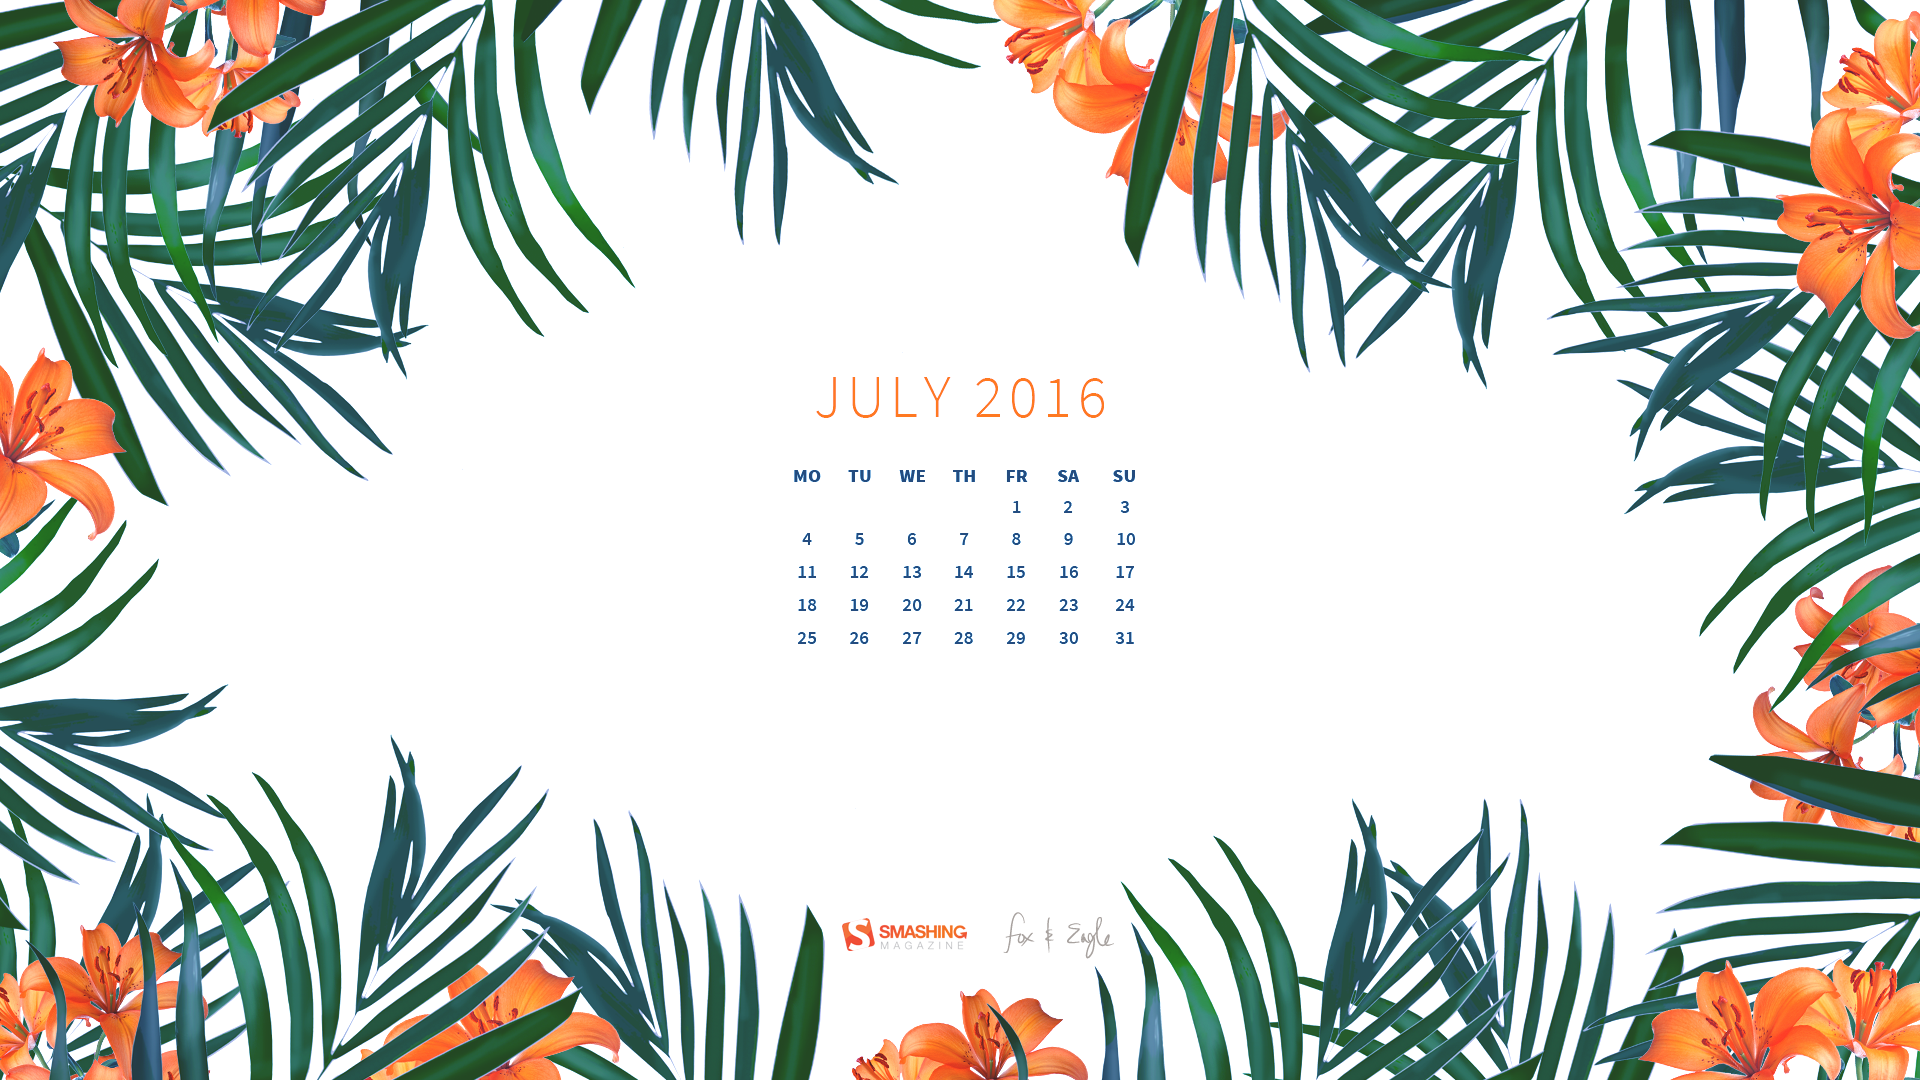 Calendar Background 2016 : Desktop wallpaper calendar iulie touchofadream